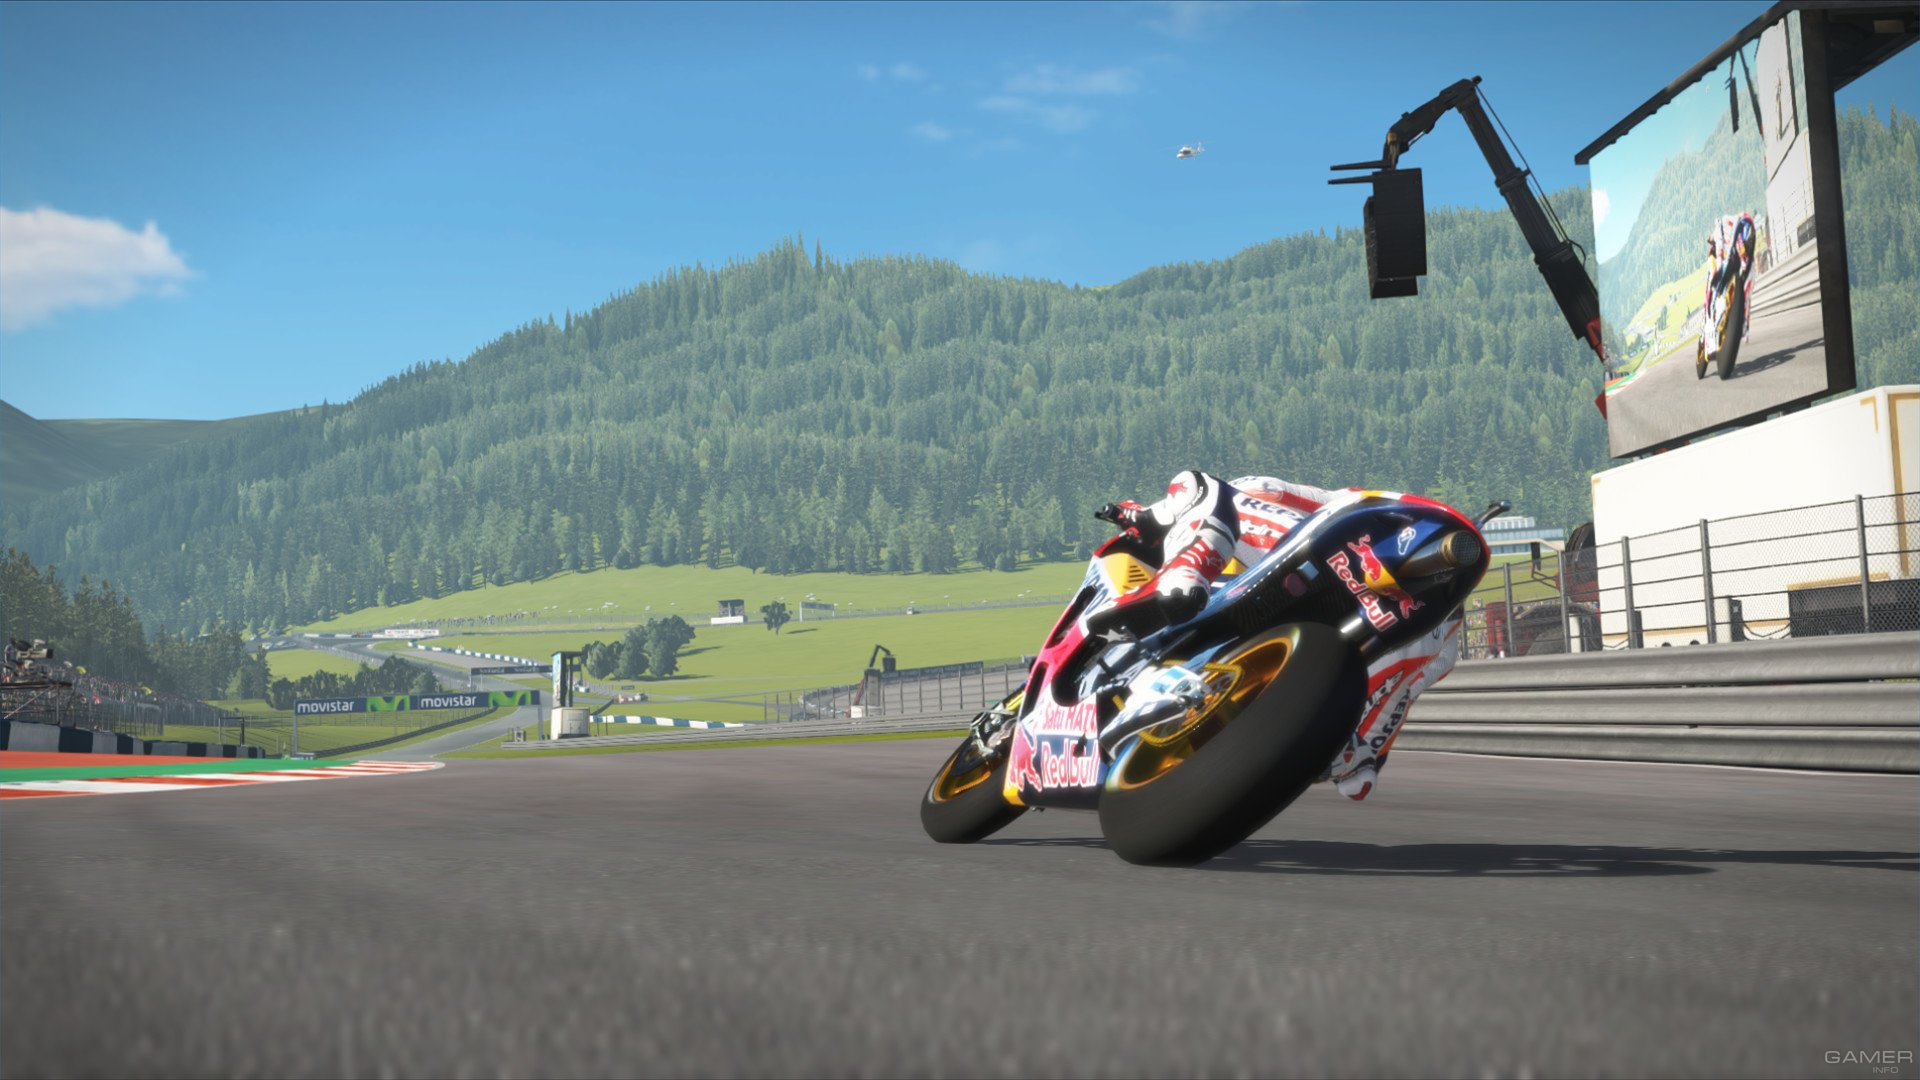 MotoGP 17 (2017 video game)